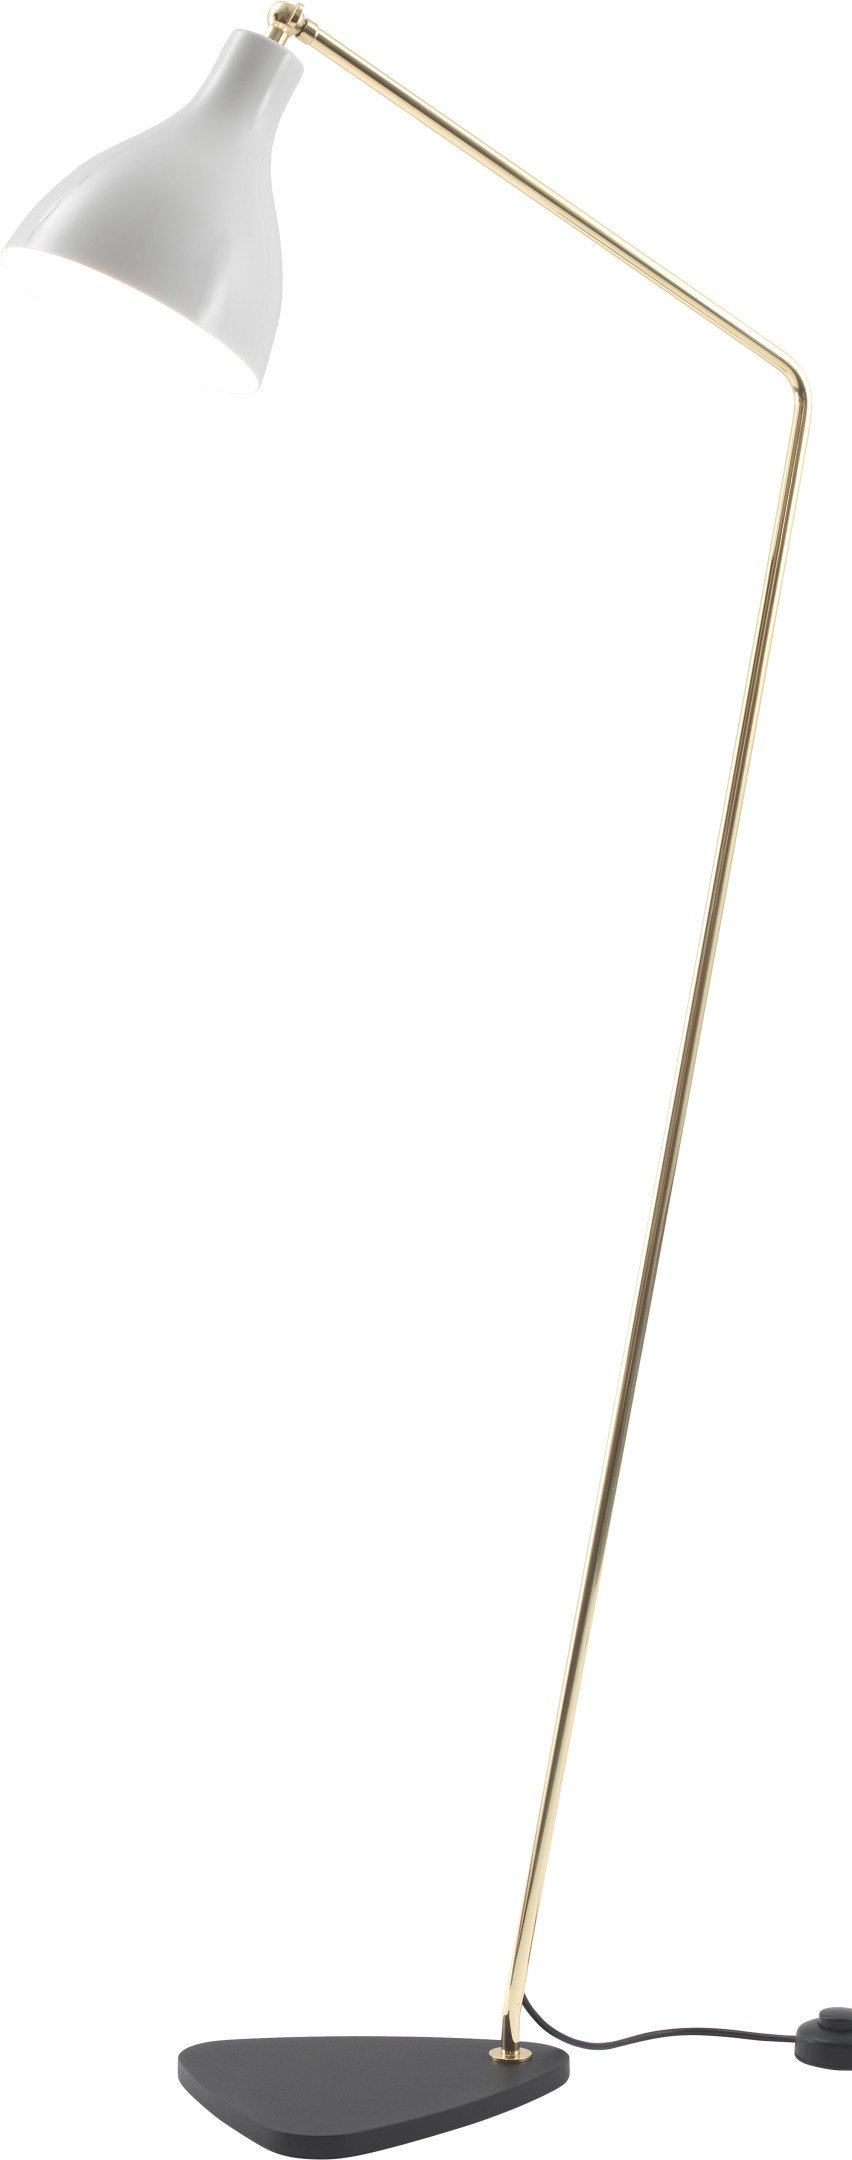 White Brass Lady V Inclinata Floor Lamp, Tato Italia